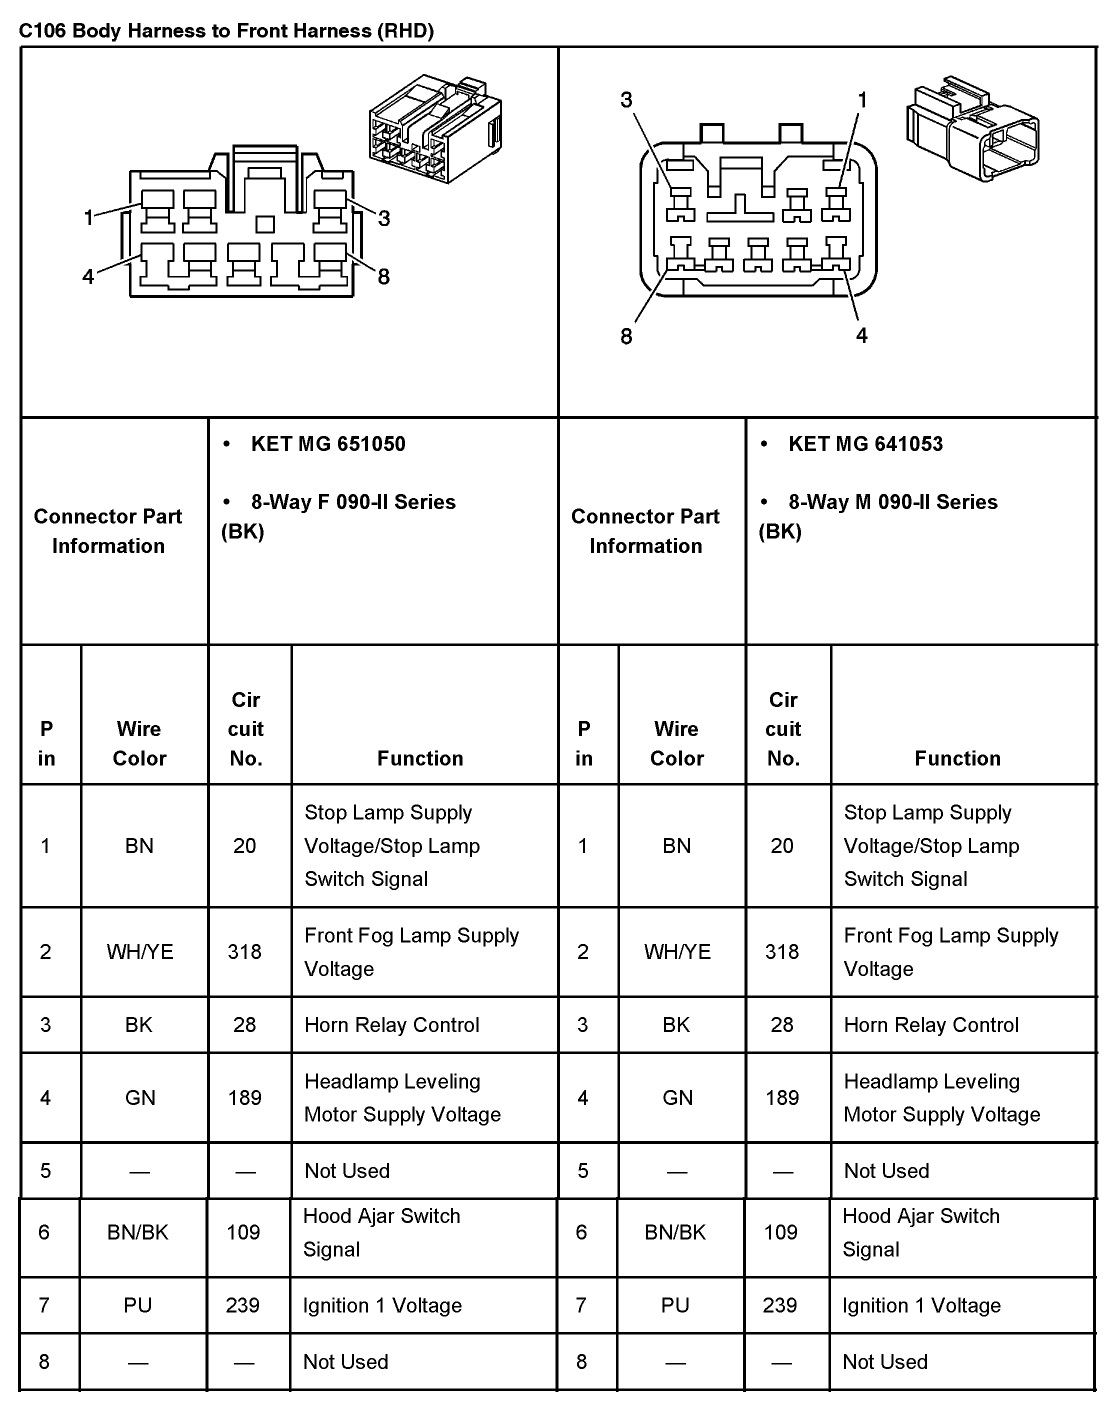 Chevrolet Tracker 2002 Fuse Box Diagram Wiring Library 2004 Chevy Diagrams Aveo Splicer Books Of U2022